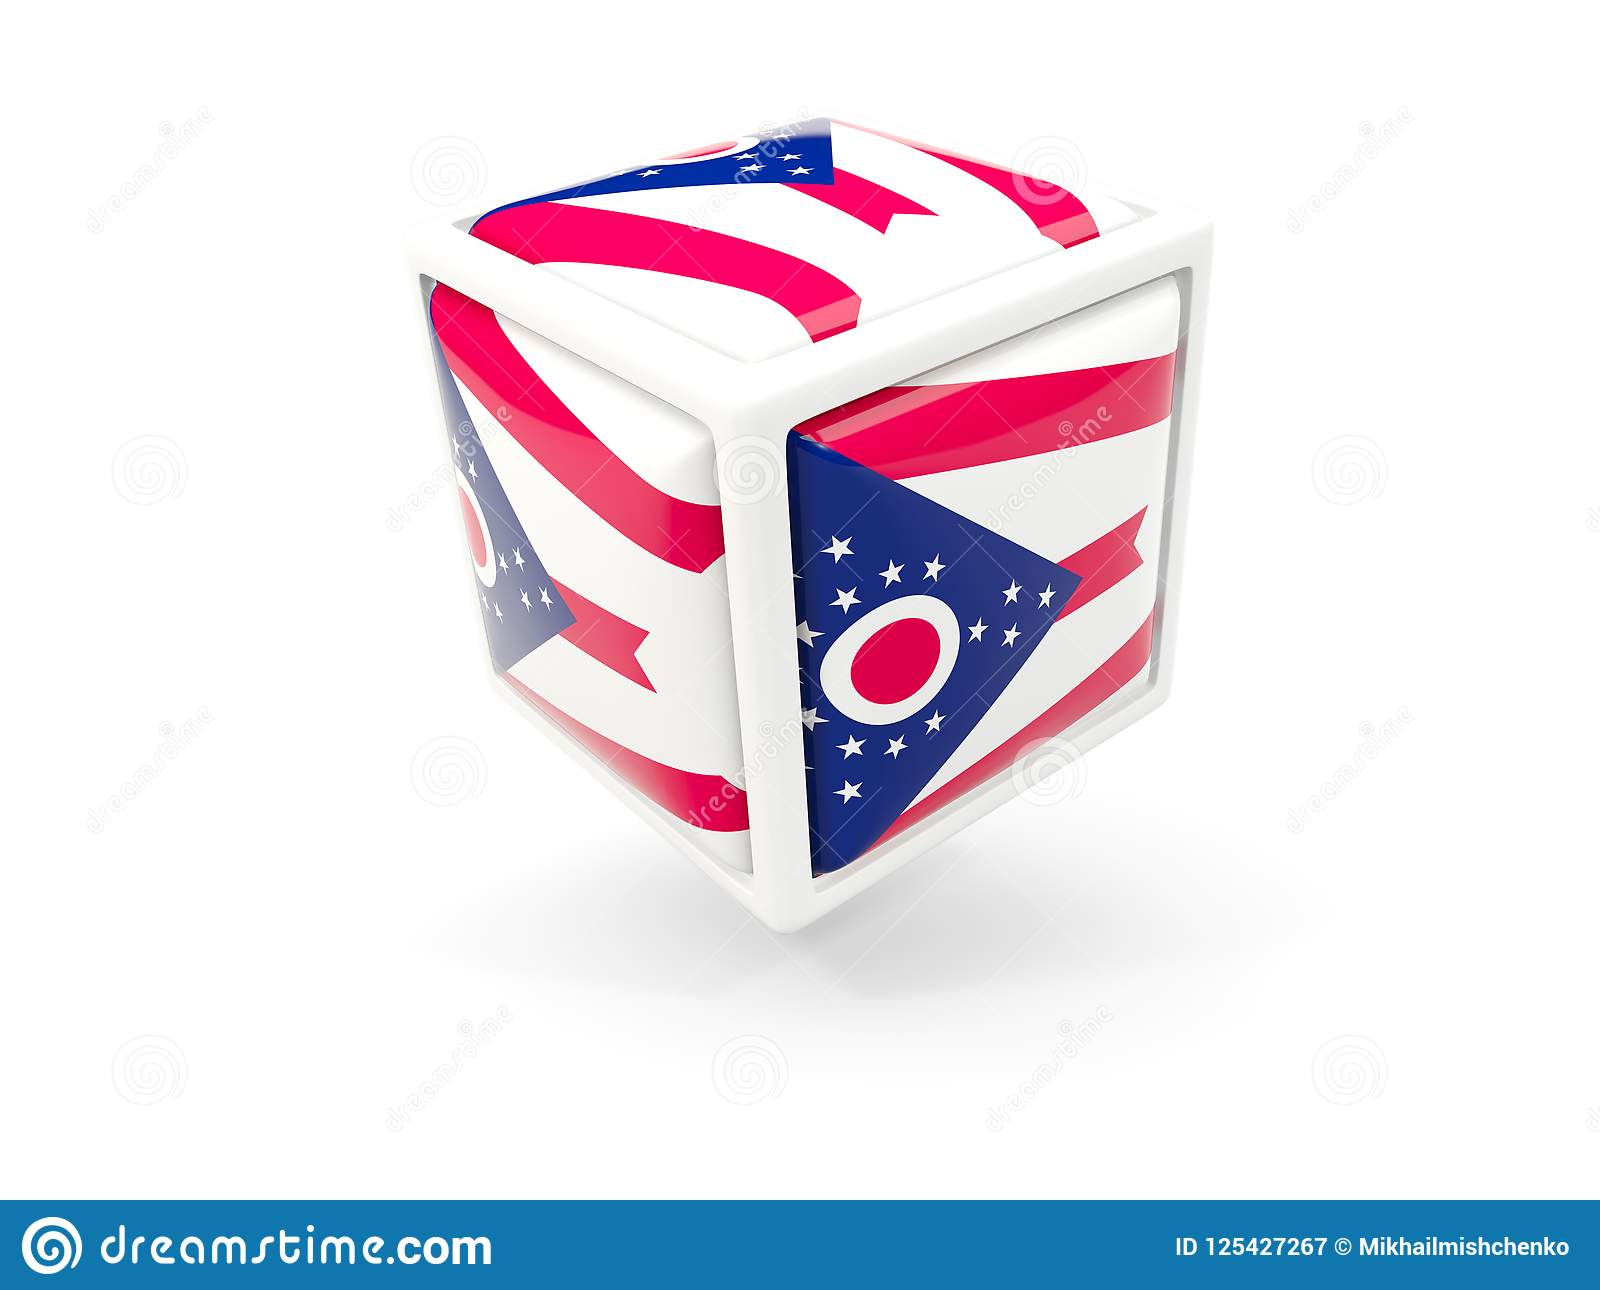 Ohio State Flag In Cube Icon  United States Local Flags